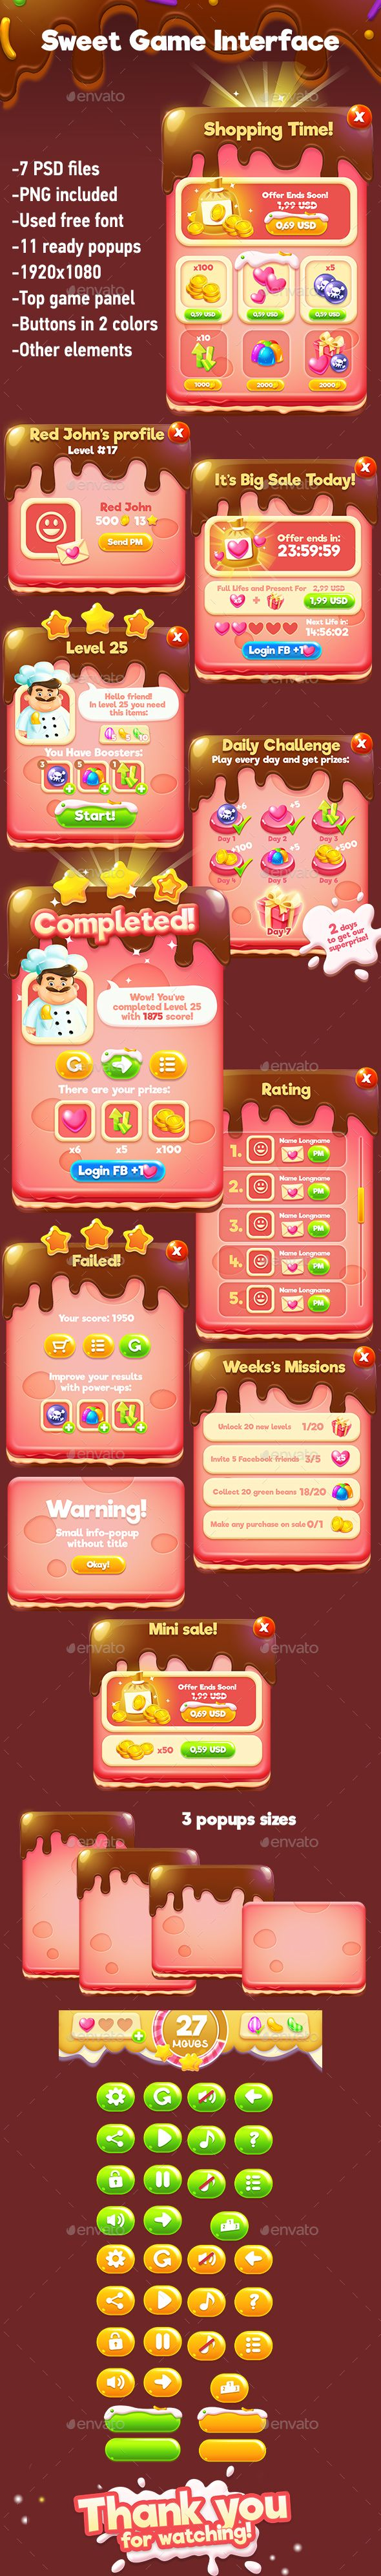 Sweet Match-3 Game Interface - User Interfaces Game Assets